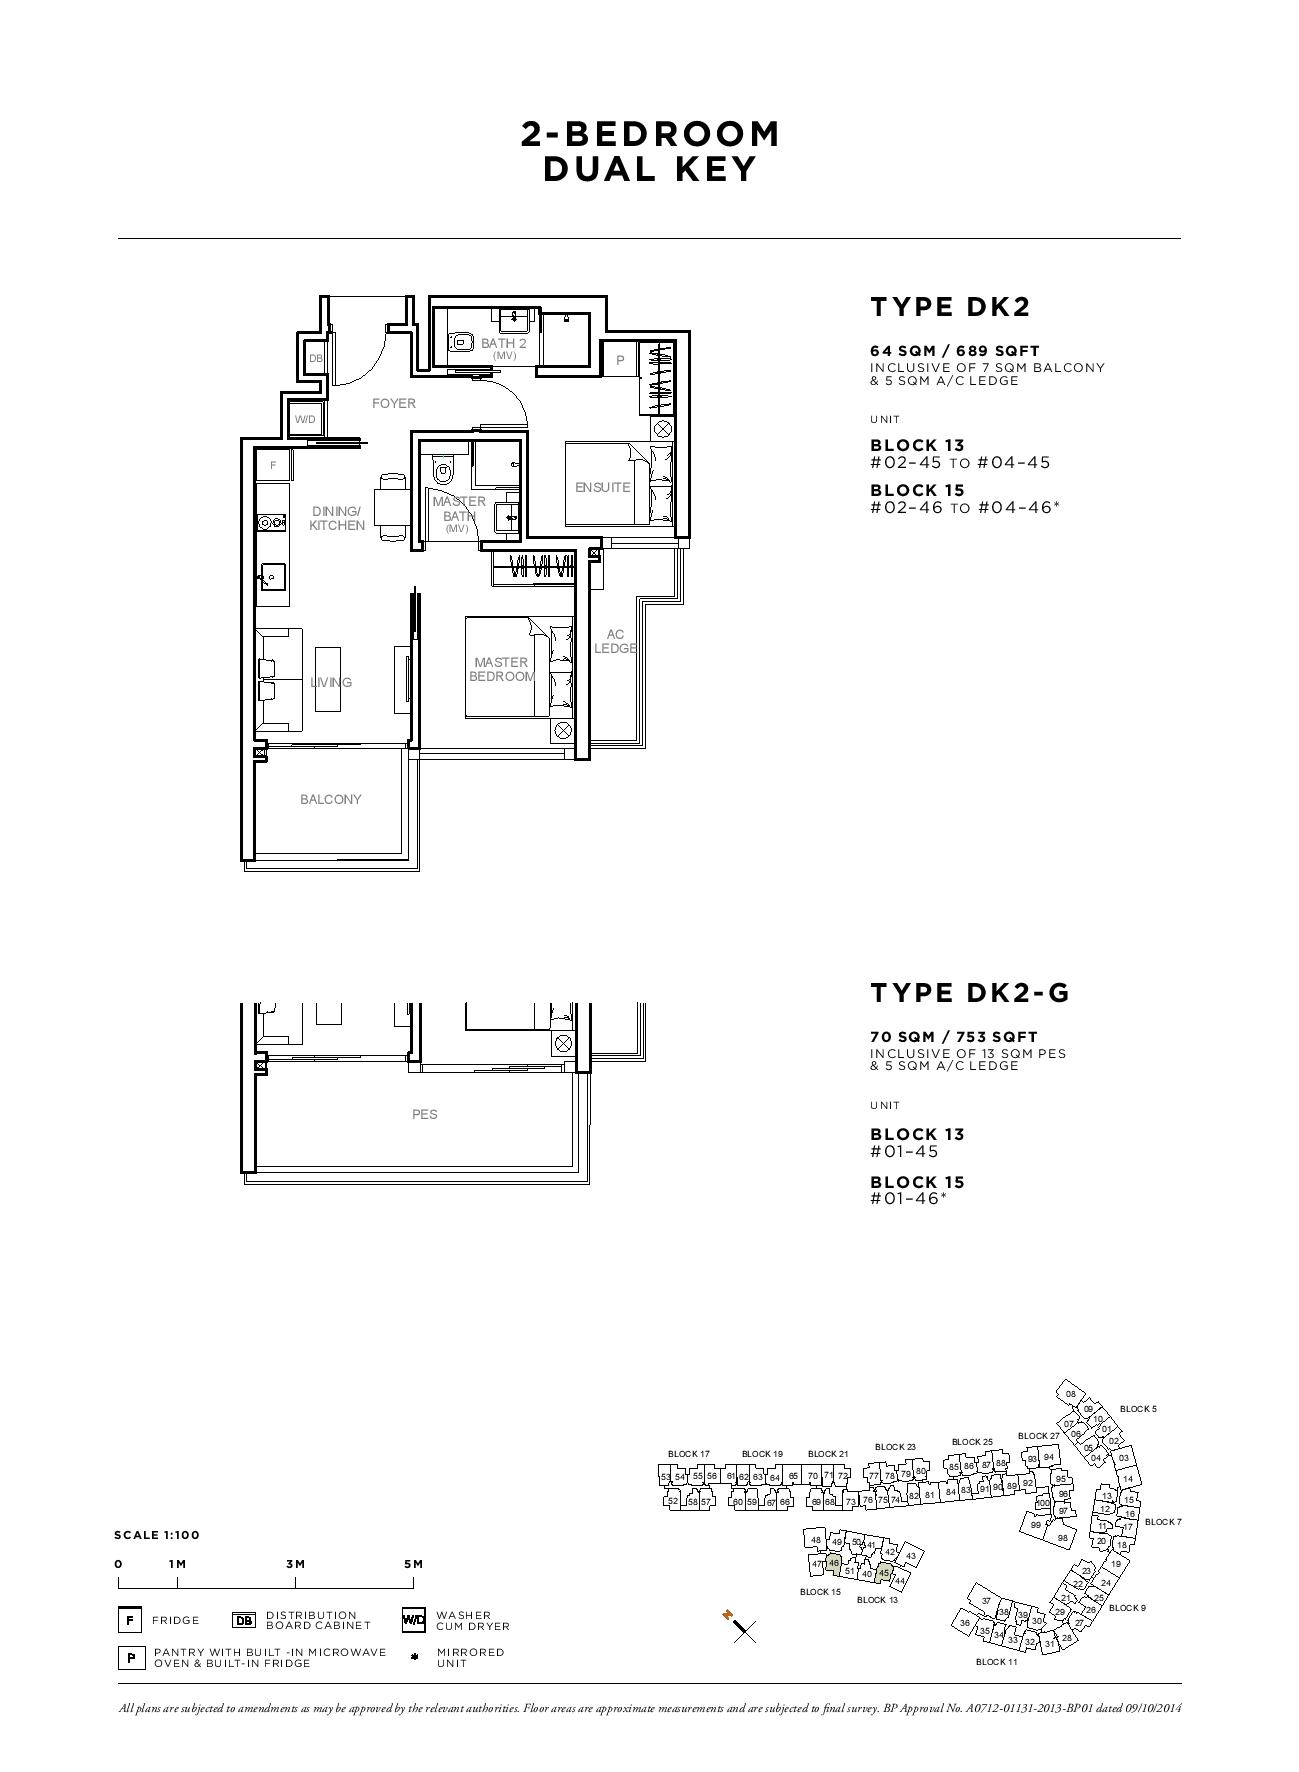 Sophia Hills 2 Bedroom Dual Key Type DK2 Floor Plans